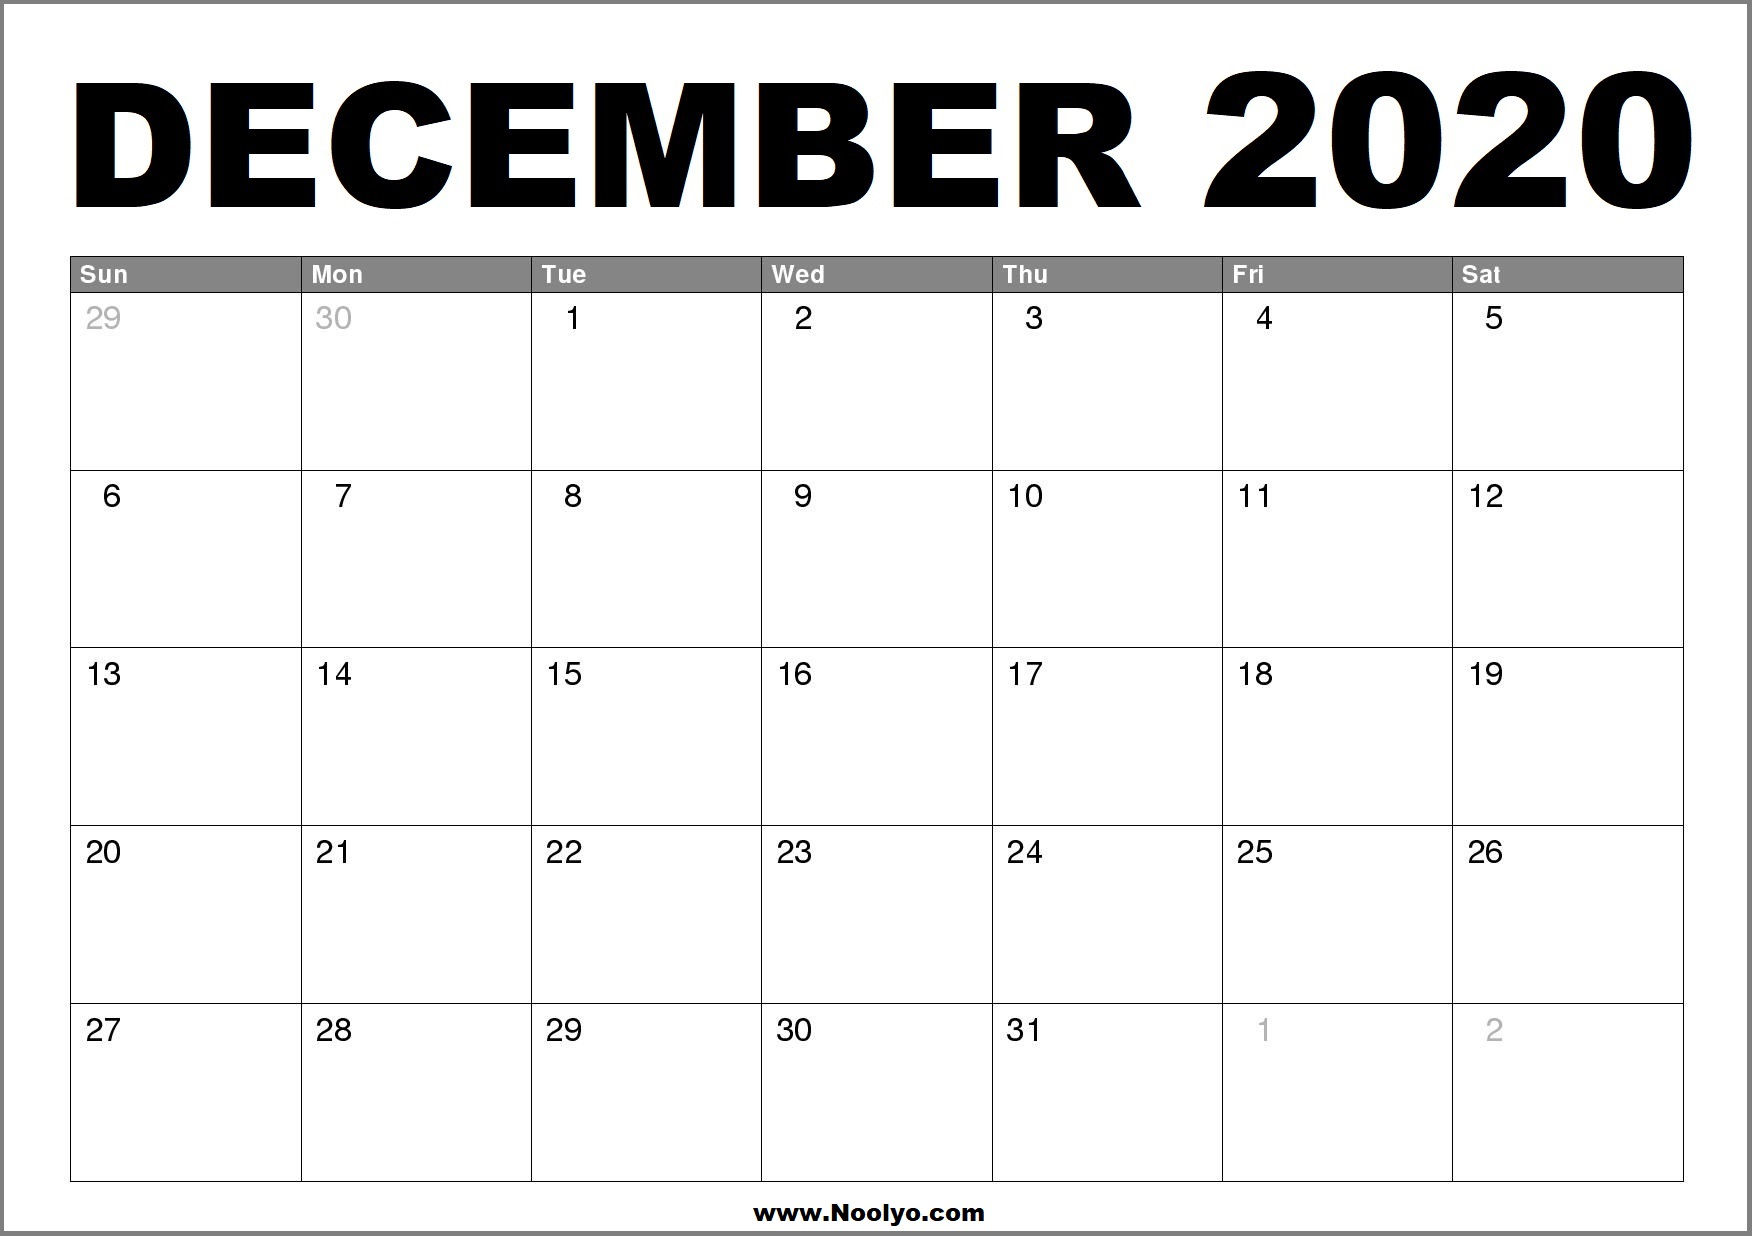 December 2020 Calendar Printable – Free Download – Noolyo.com